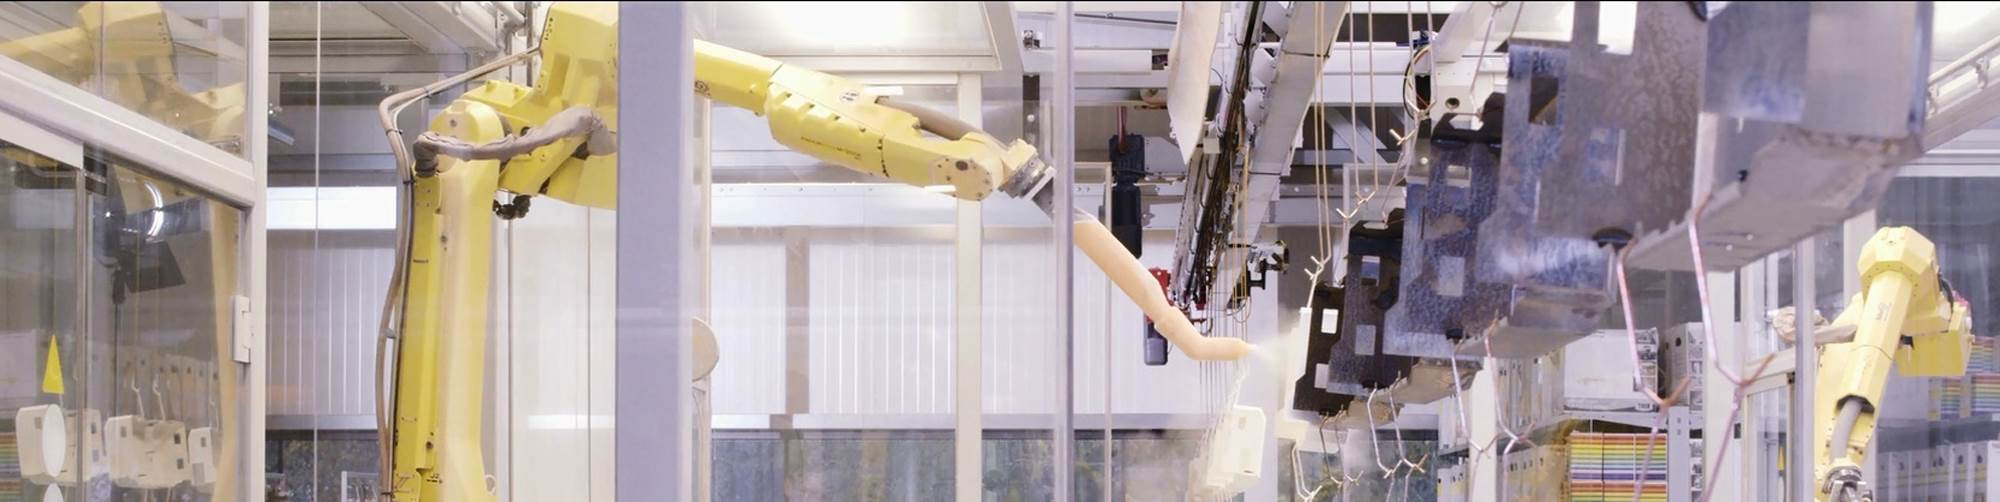 Automated painting with robots is one of the major trends in industrial painting technology.